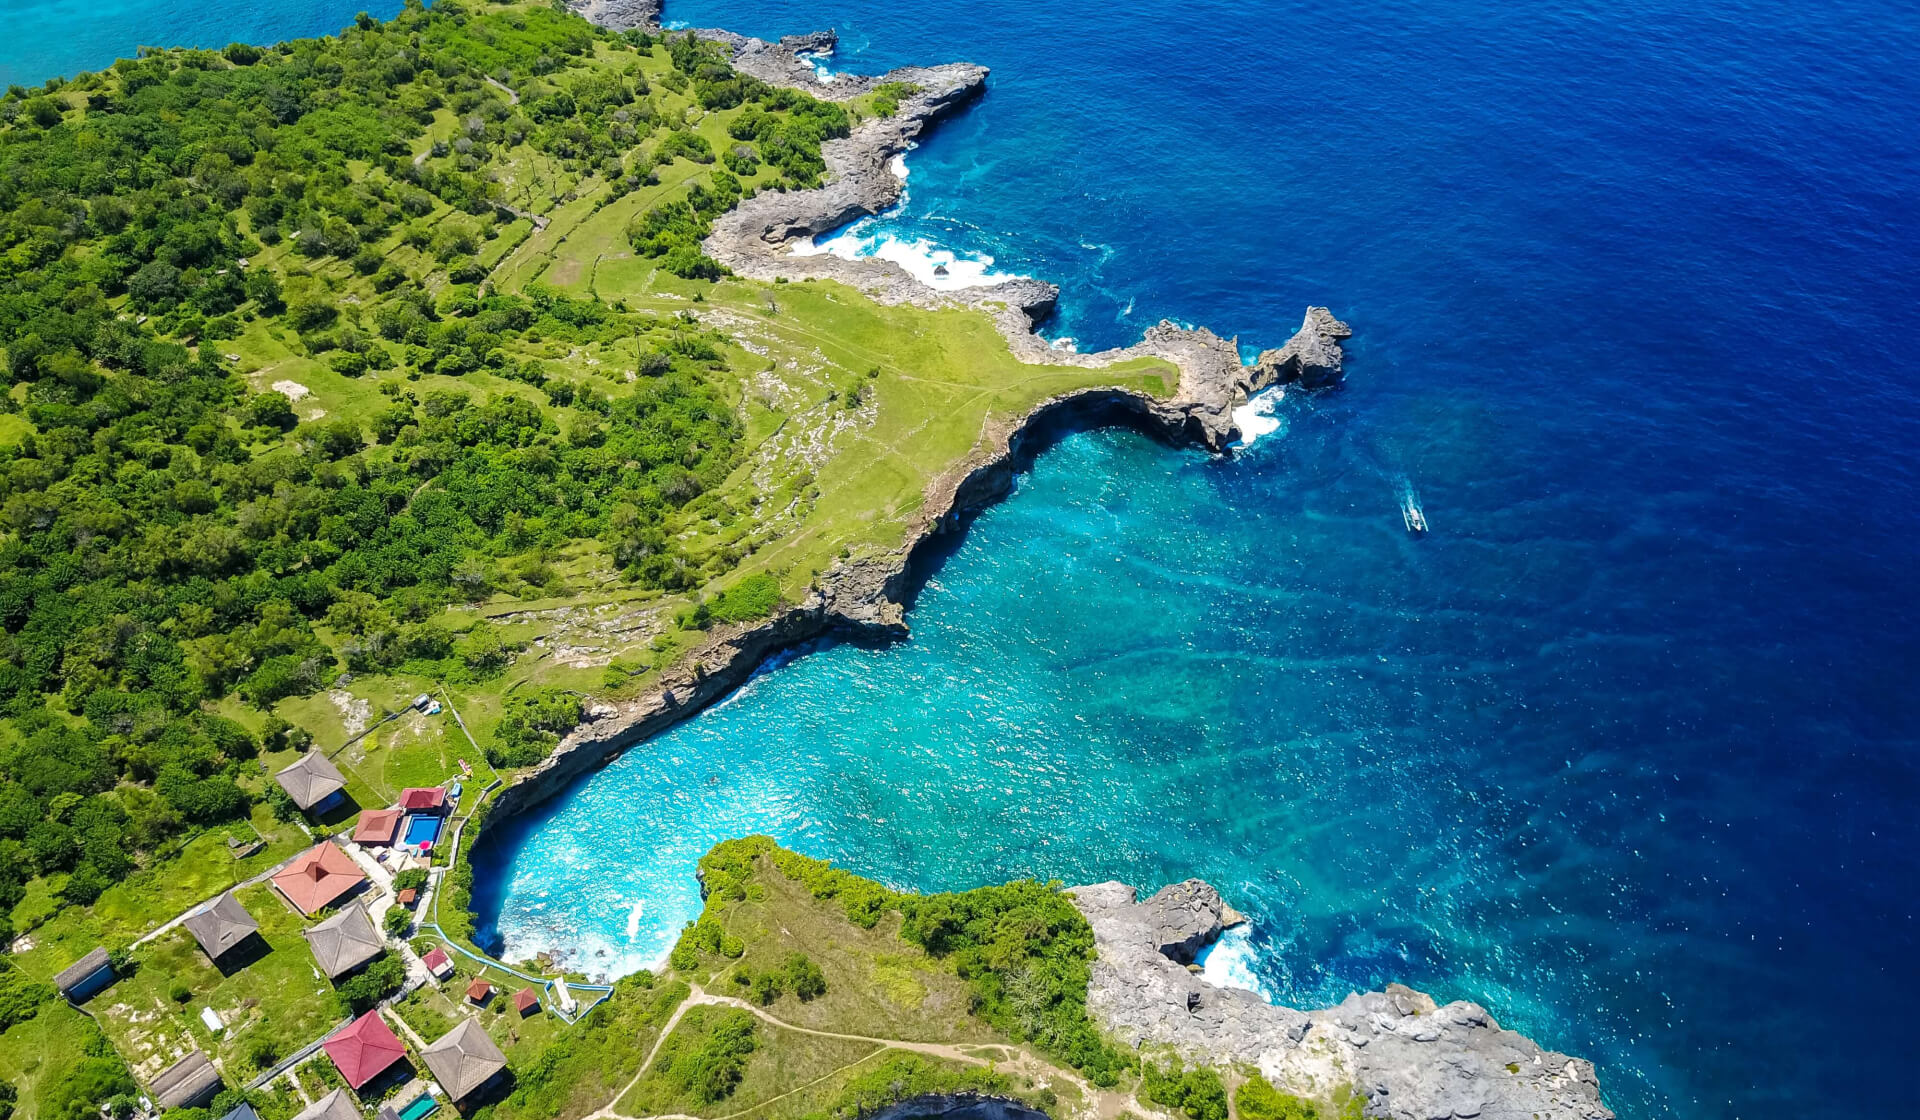 Aerial view of small green island (Nusa Ceningan) and crystal clear blue waters